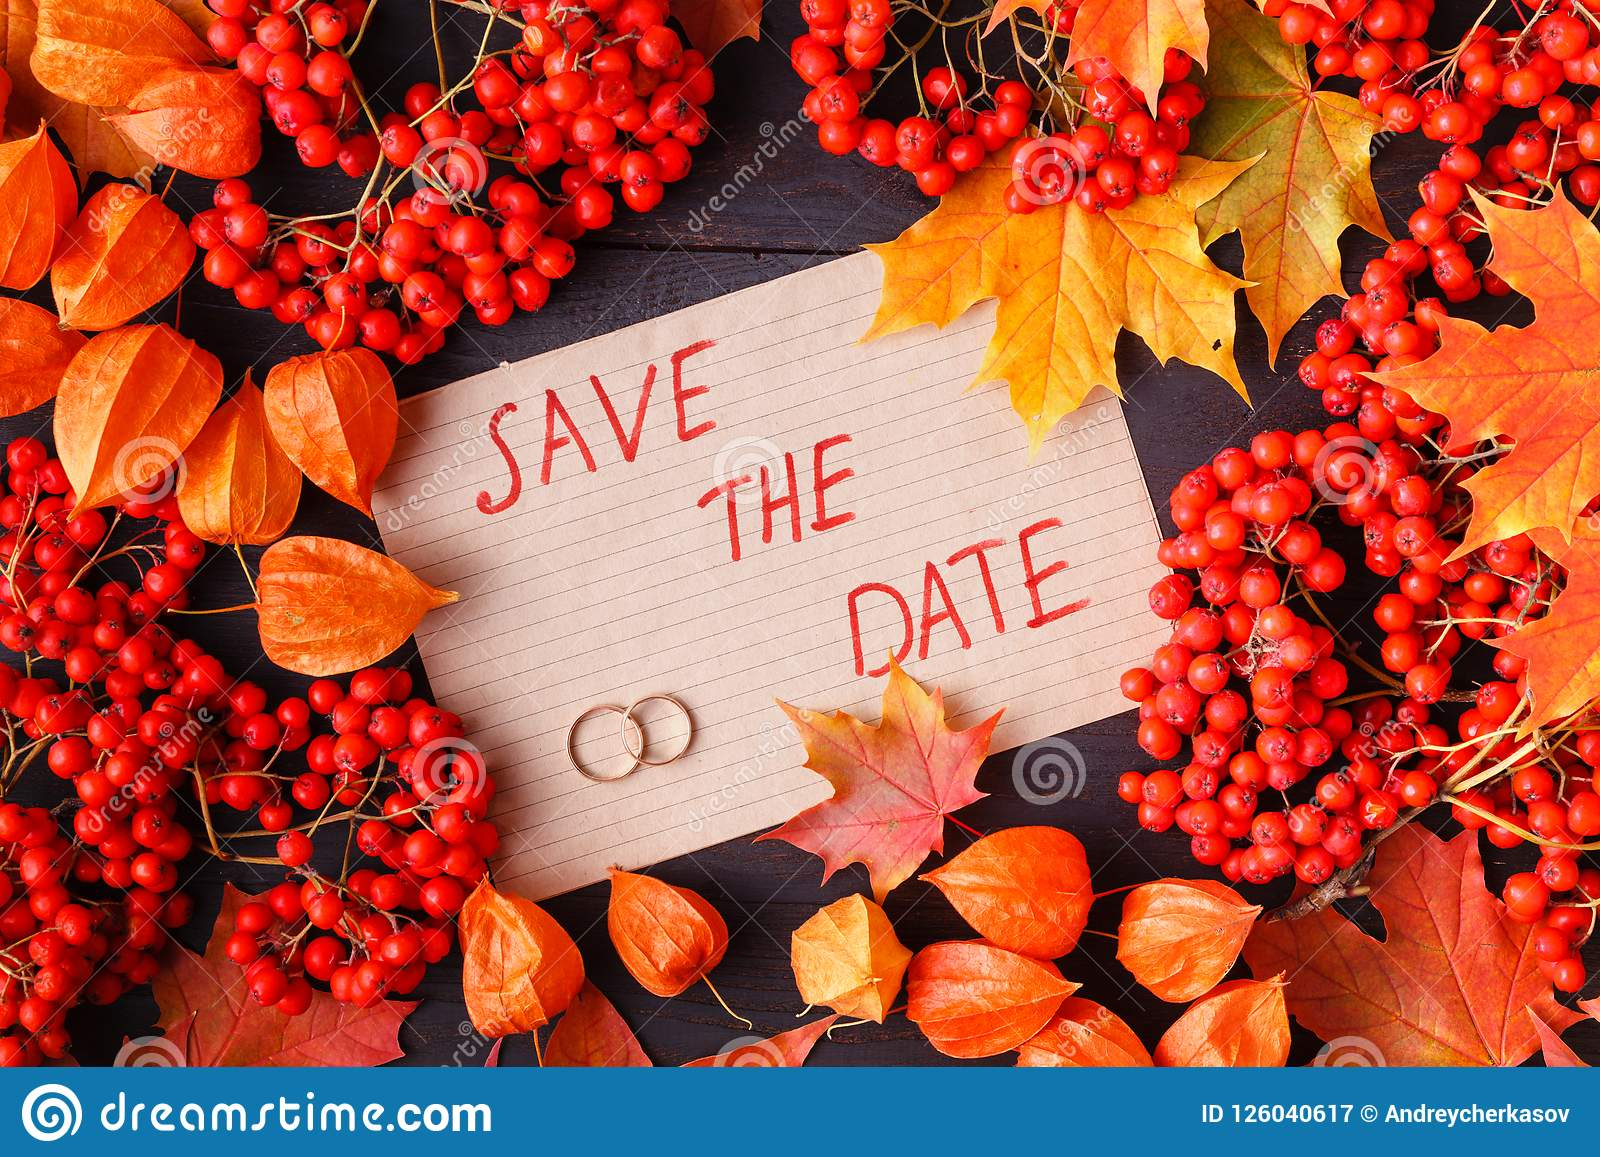 Bright Autumn Leaves For Wedding Invitation Or Save The Date ...